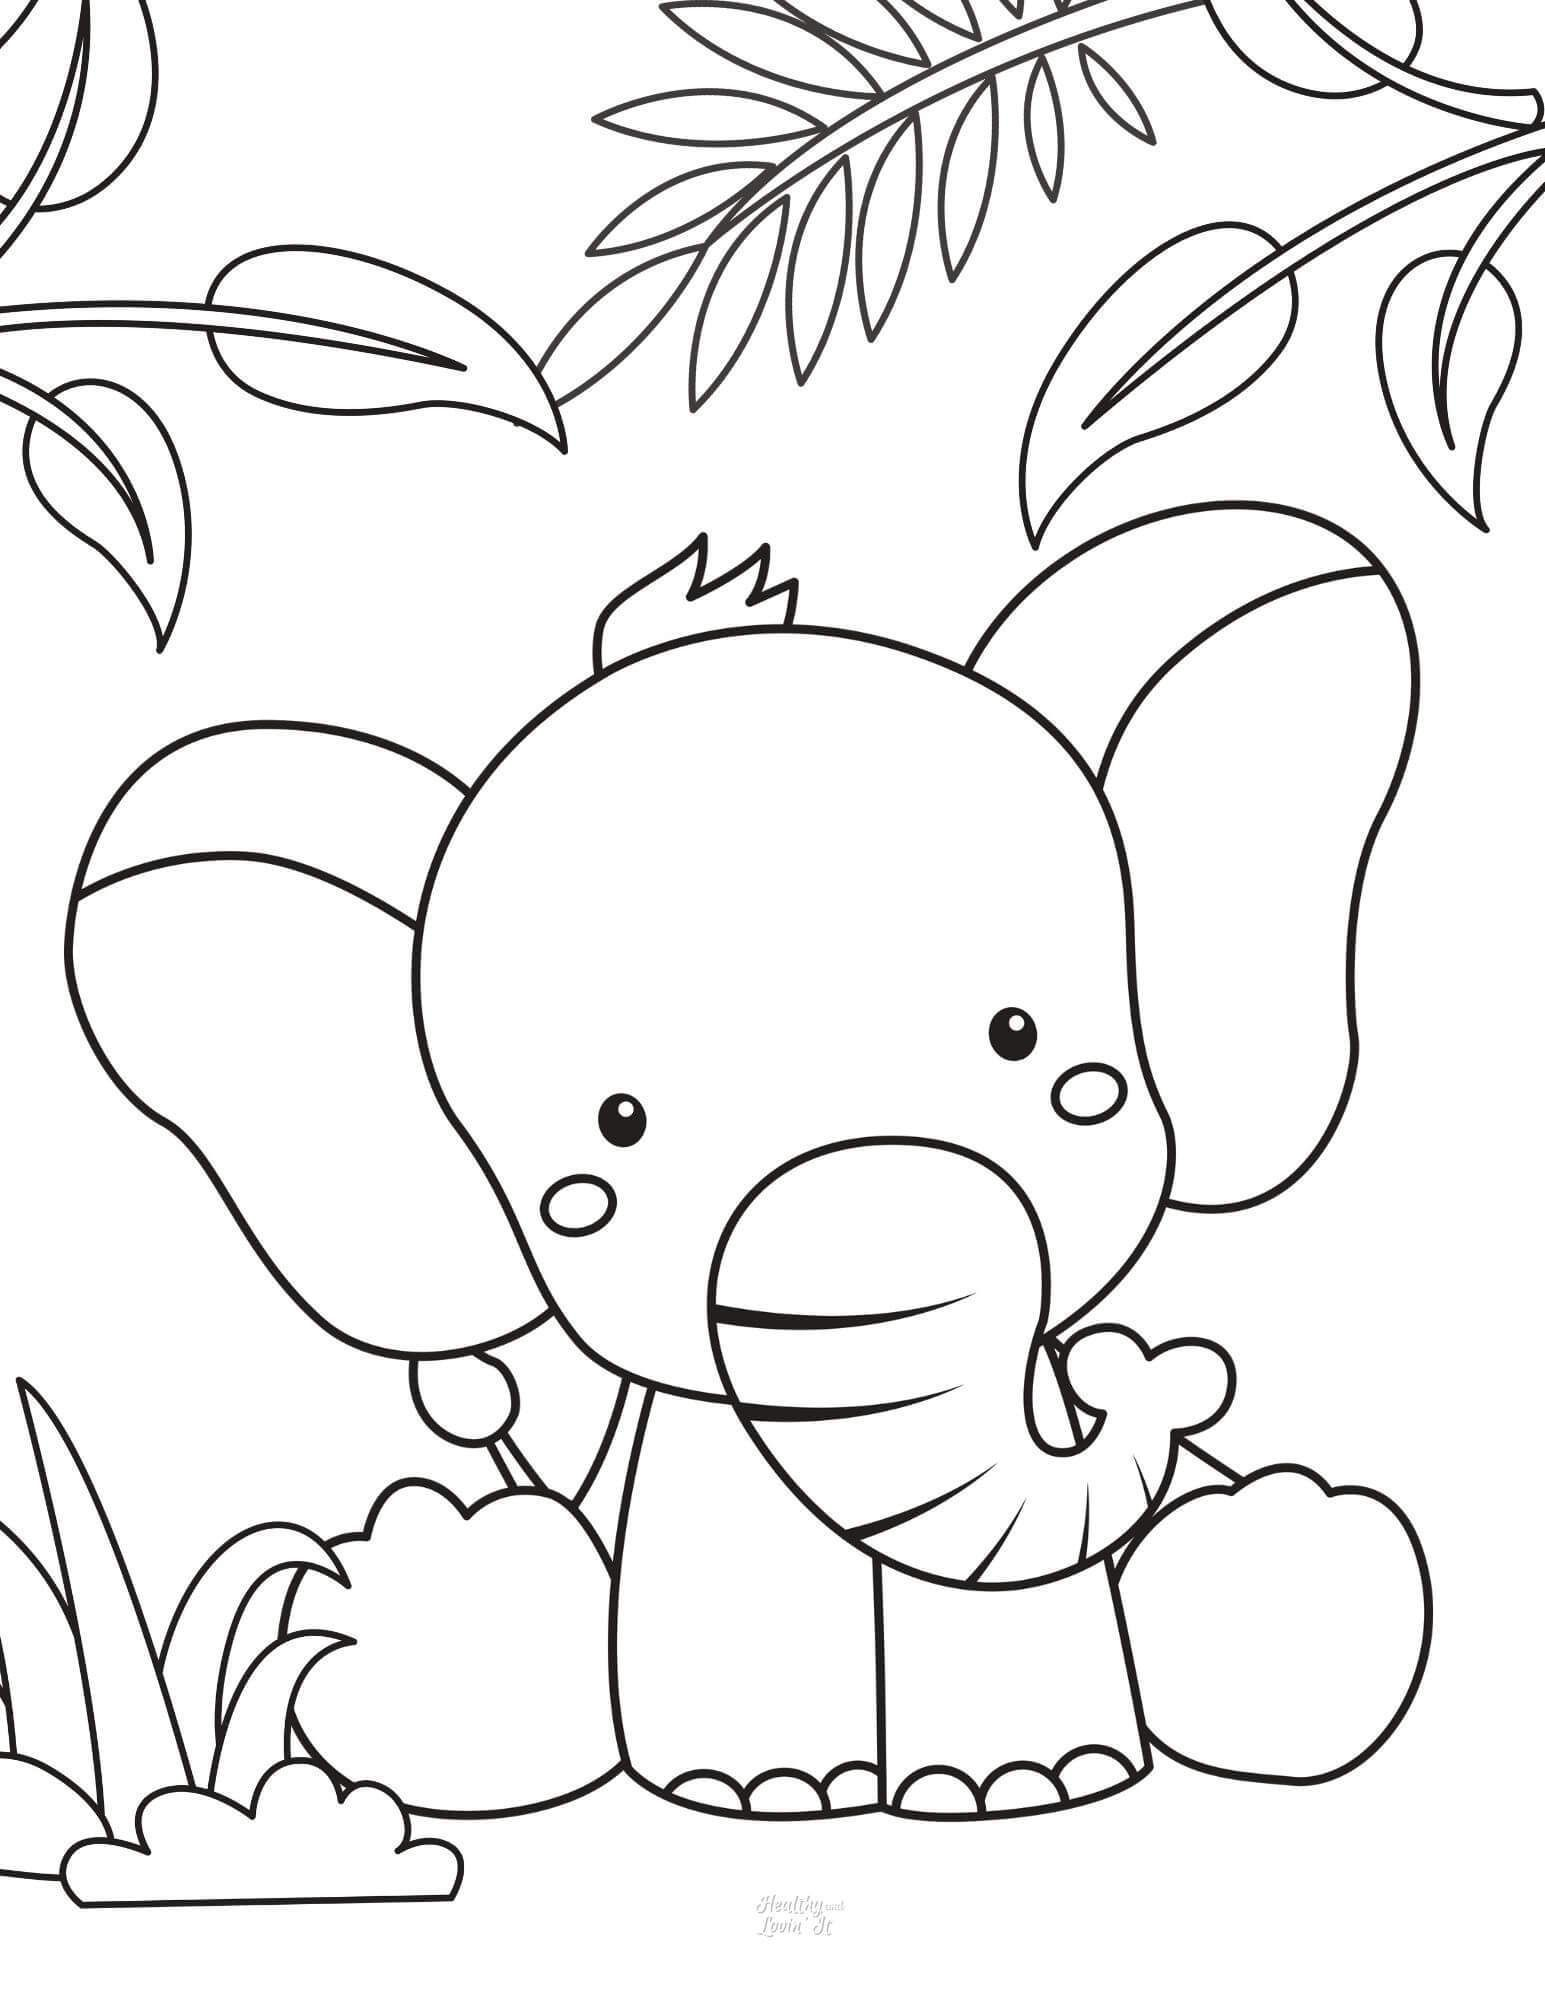 Free Printable Elephant Coloring Pages Easy Elephant Pictures To Color Elephant Coloring Page Unicorn Coloring Pages Coloring Pages